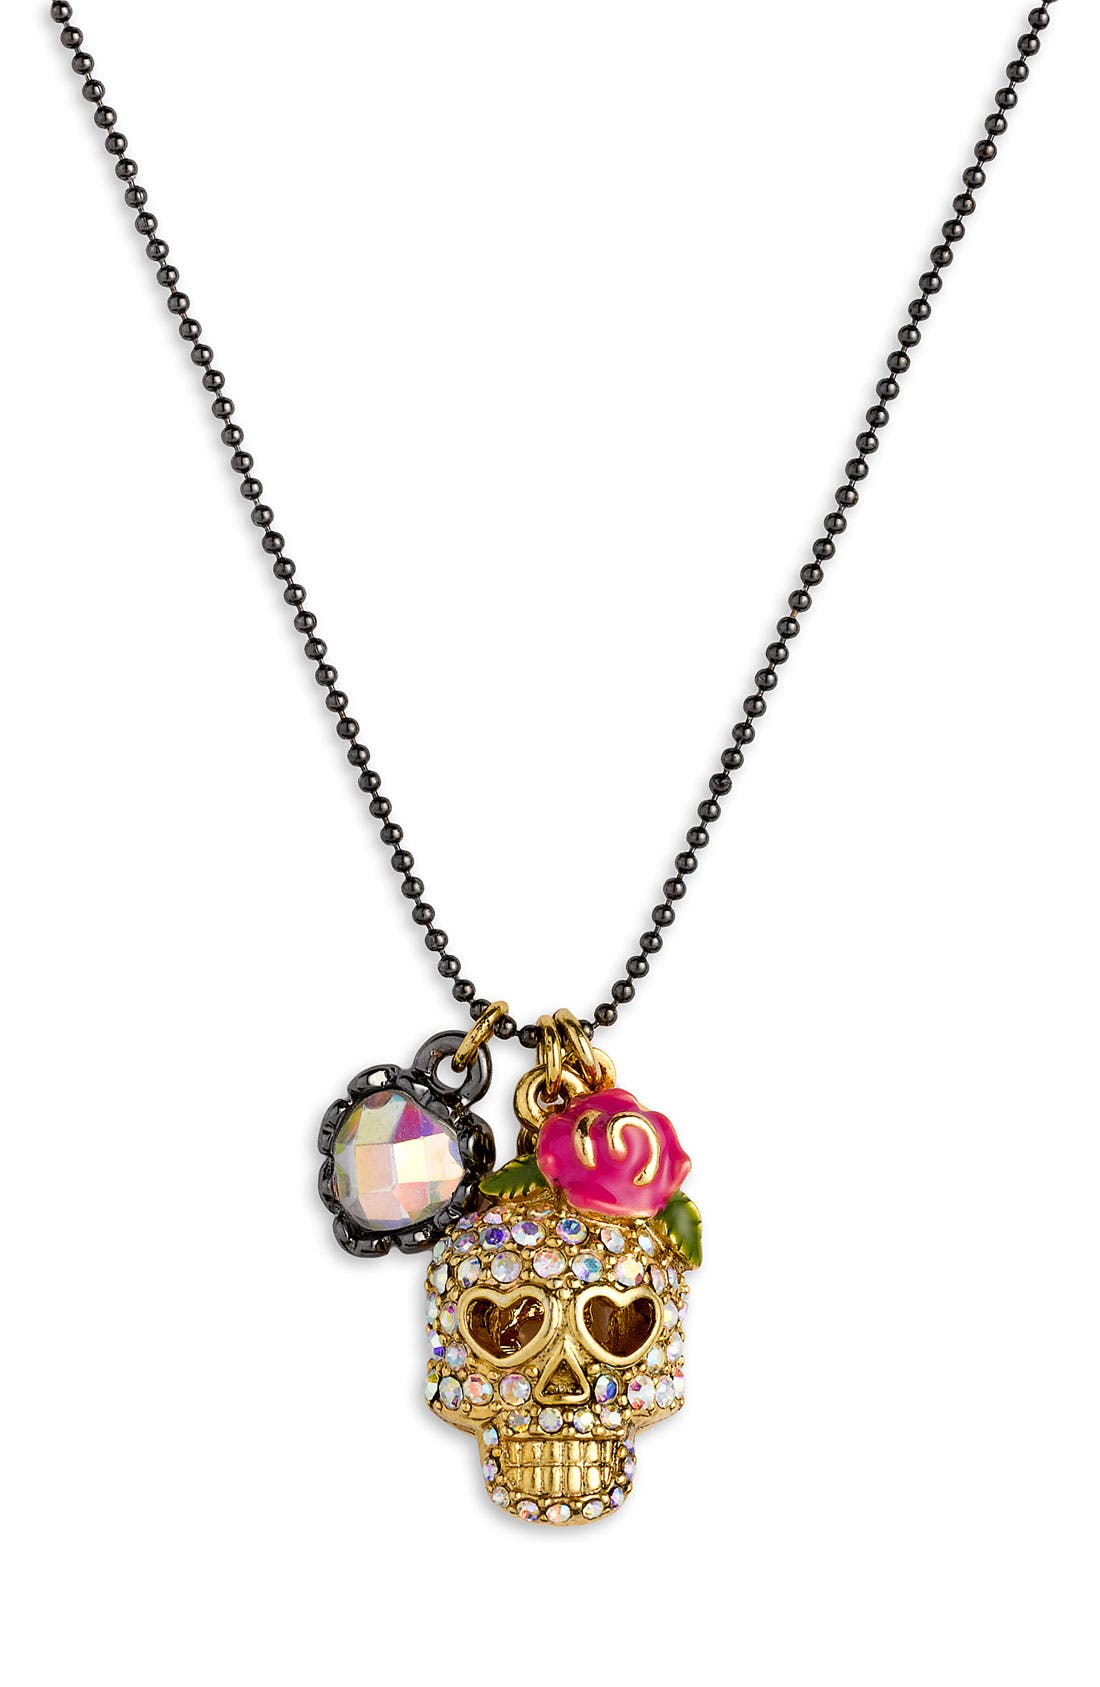 Alternate Image 1 Selected - Betsey Johnson 'Skull Charm' Necklace